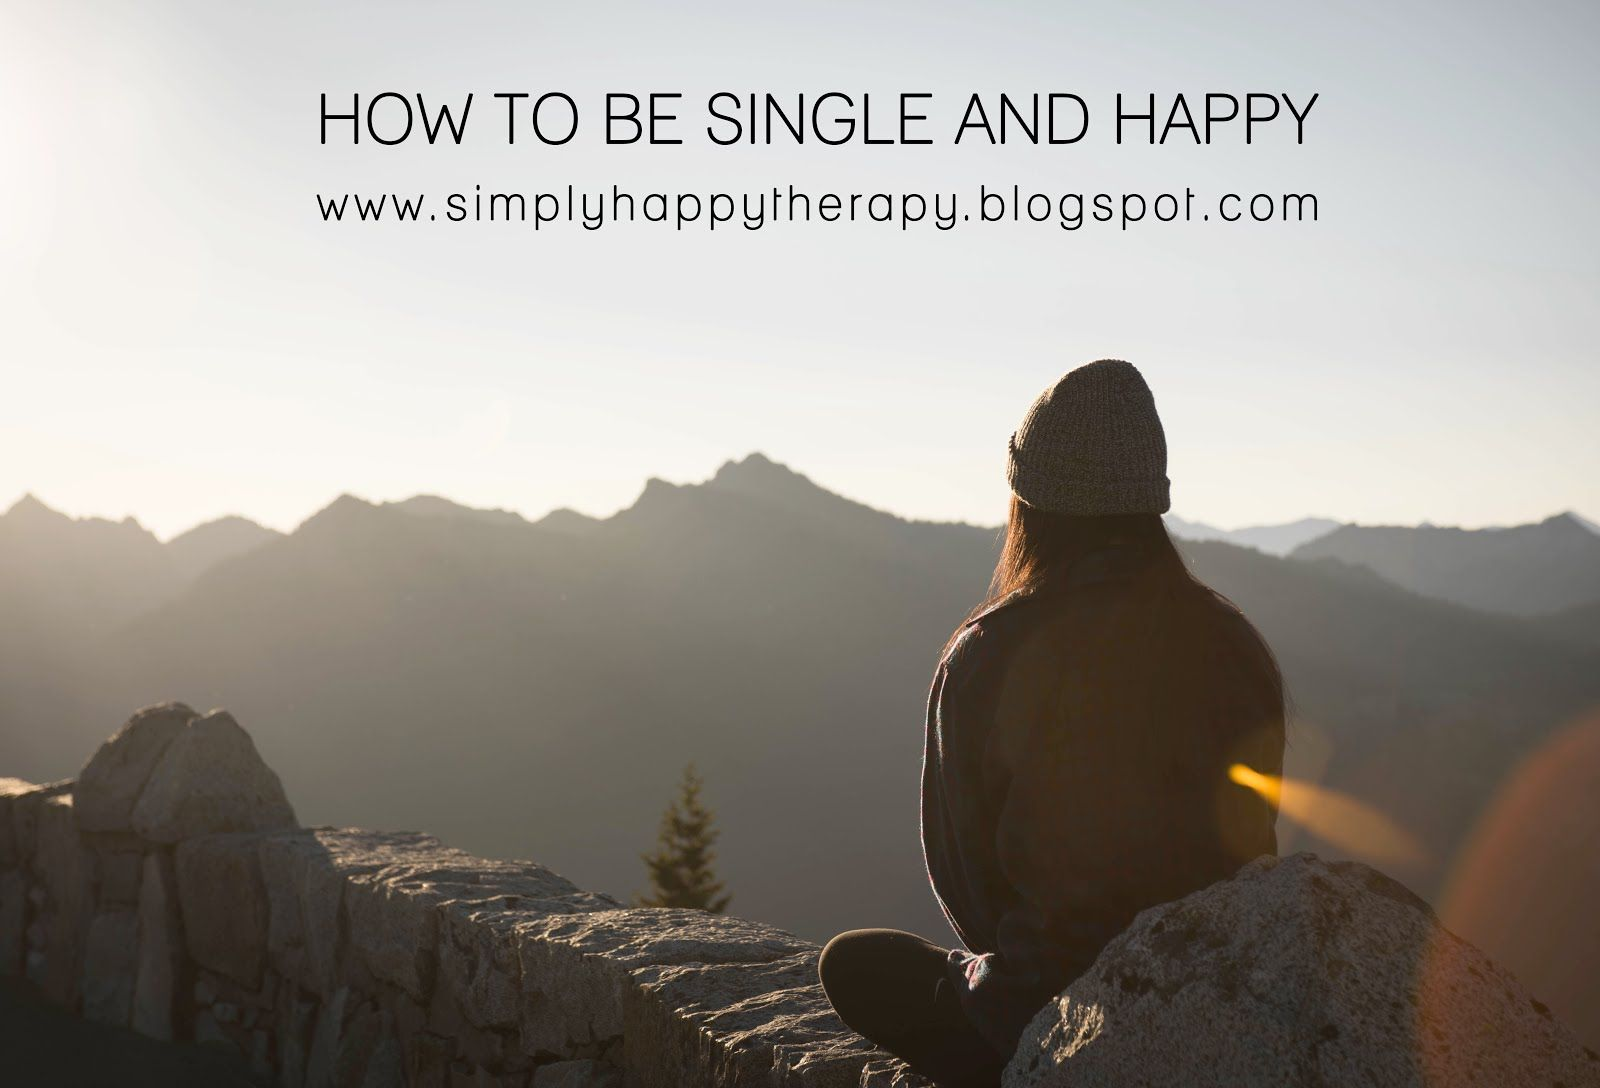 Get Your Daily Dose Of Happiness How To Be Single And Happy #single  #fabulous